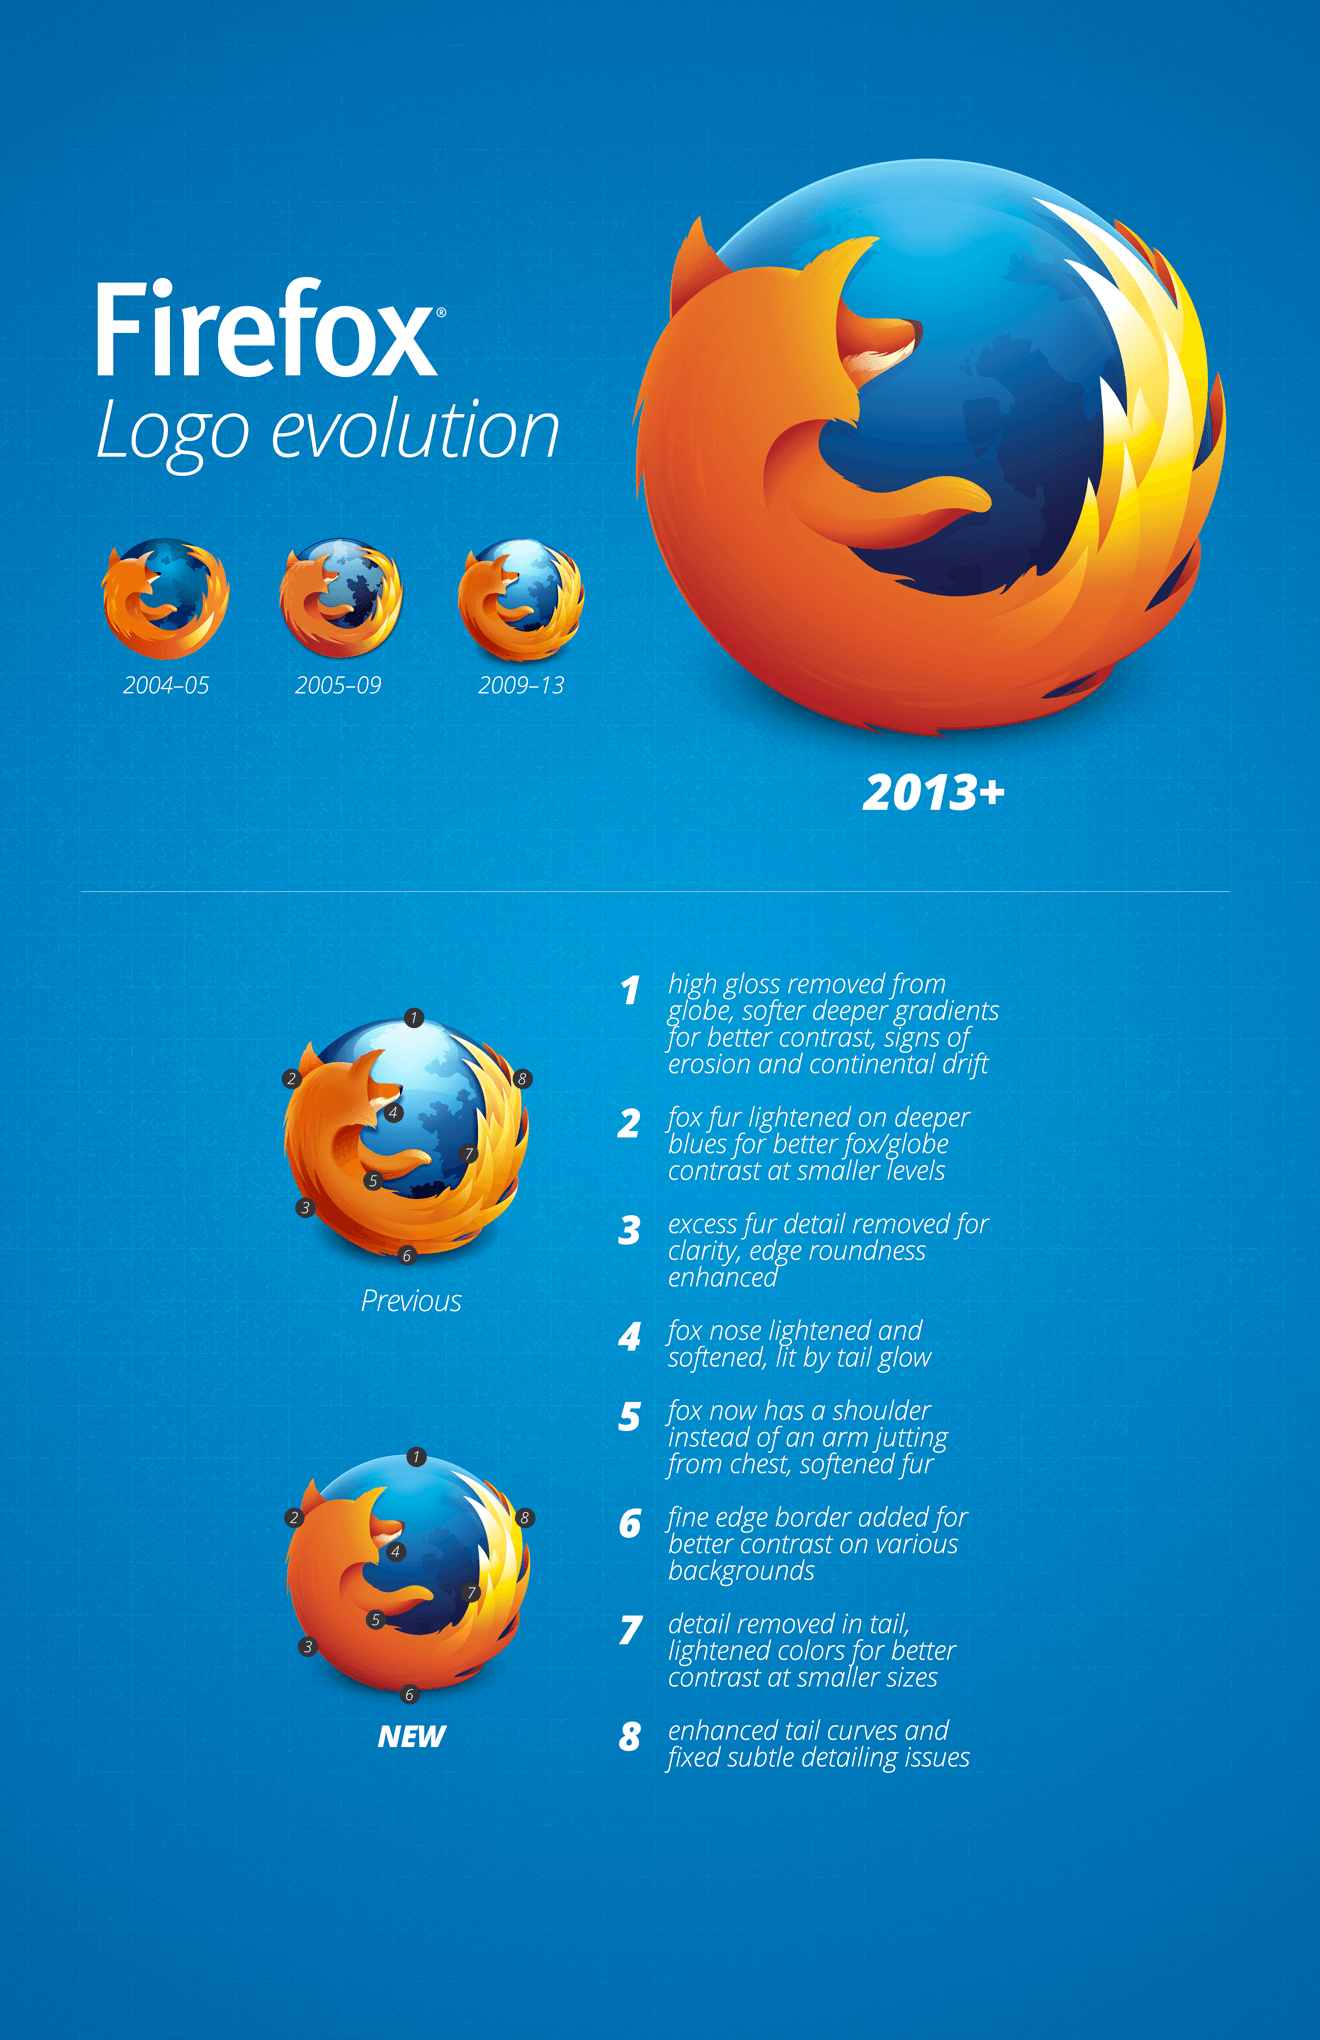 Firefox Logo - A New Firefox Logo for a New Firefox Era | about:pixels